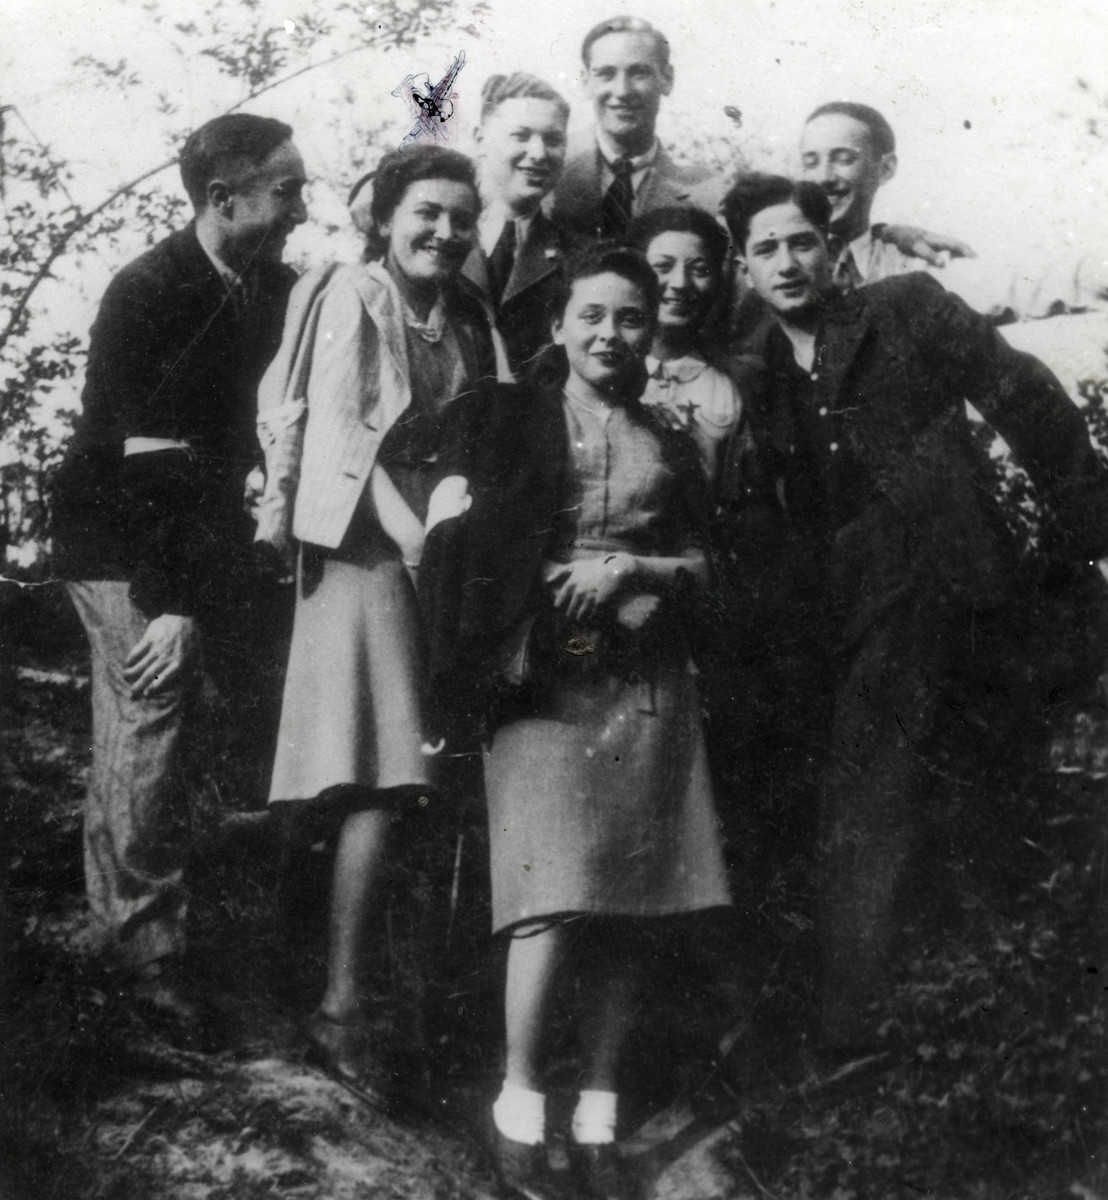 Group portrait of young people from a Zionist group in the Lublin ghetto.  Regina Fryd is pictured second from the left.  This photo was taken one year before she was murdered.  Also pictured are Stella Rubinlicht in front and her husband in the back, center.